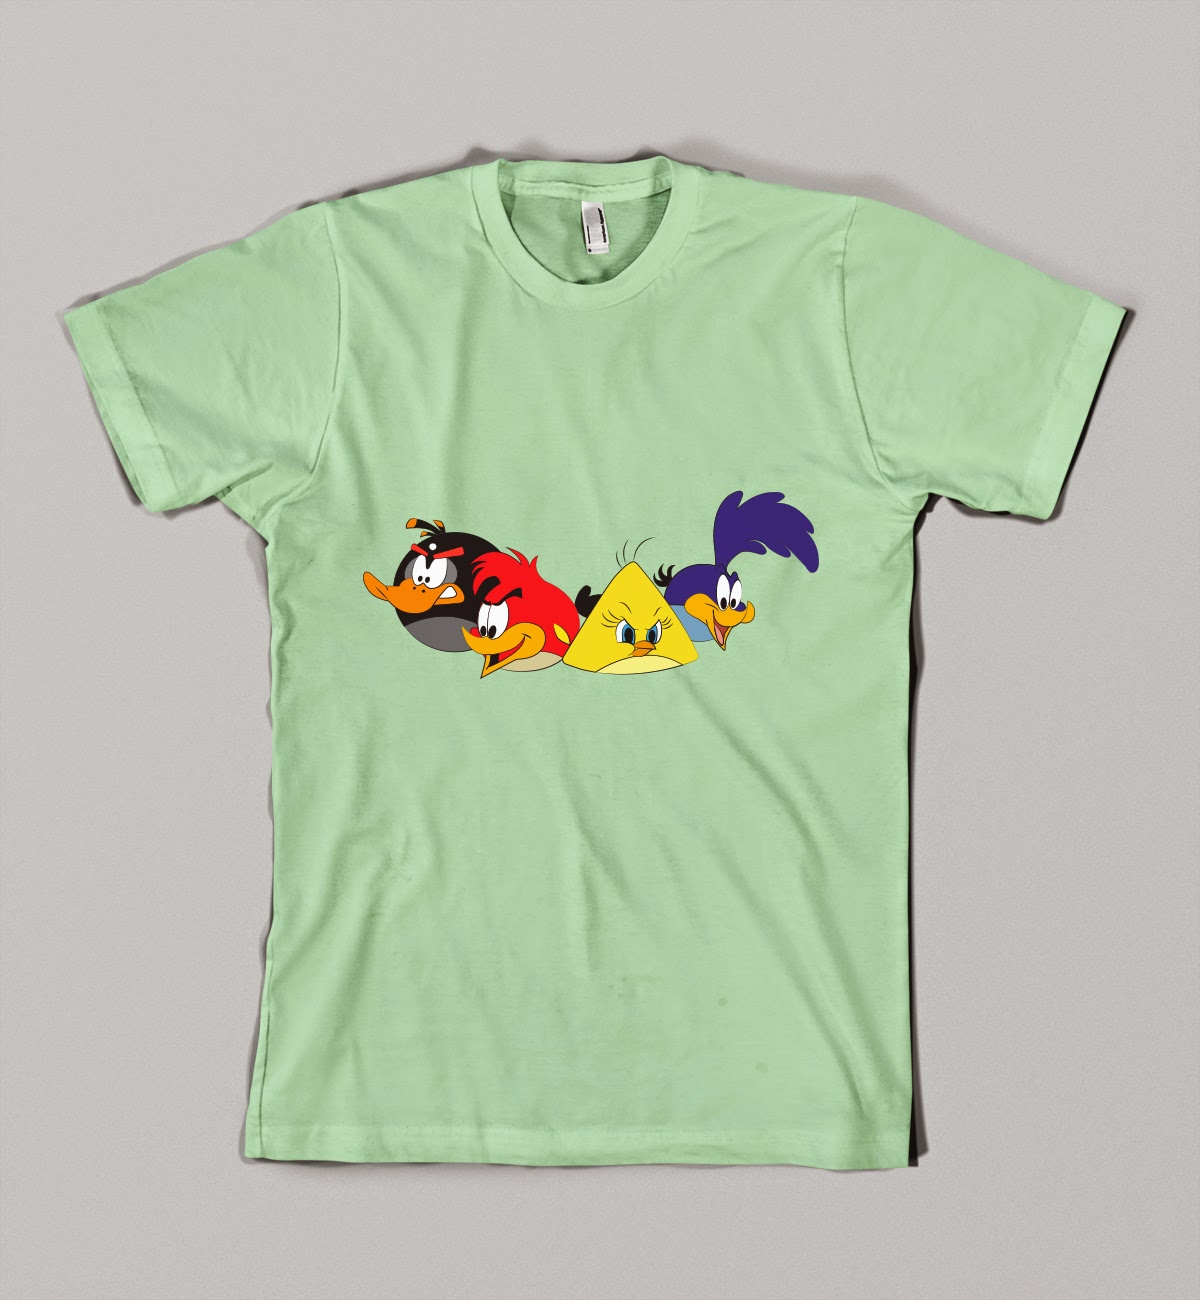 http://www.graphyness.co.il/#!product/prd1/2125572525/6016.-angry-birds